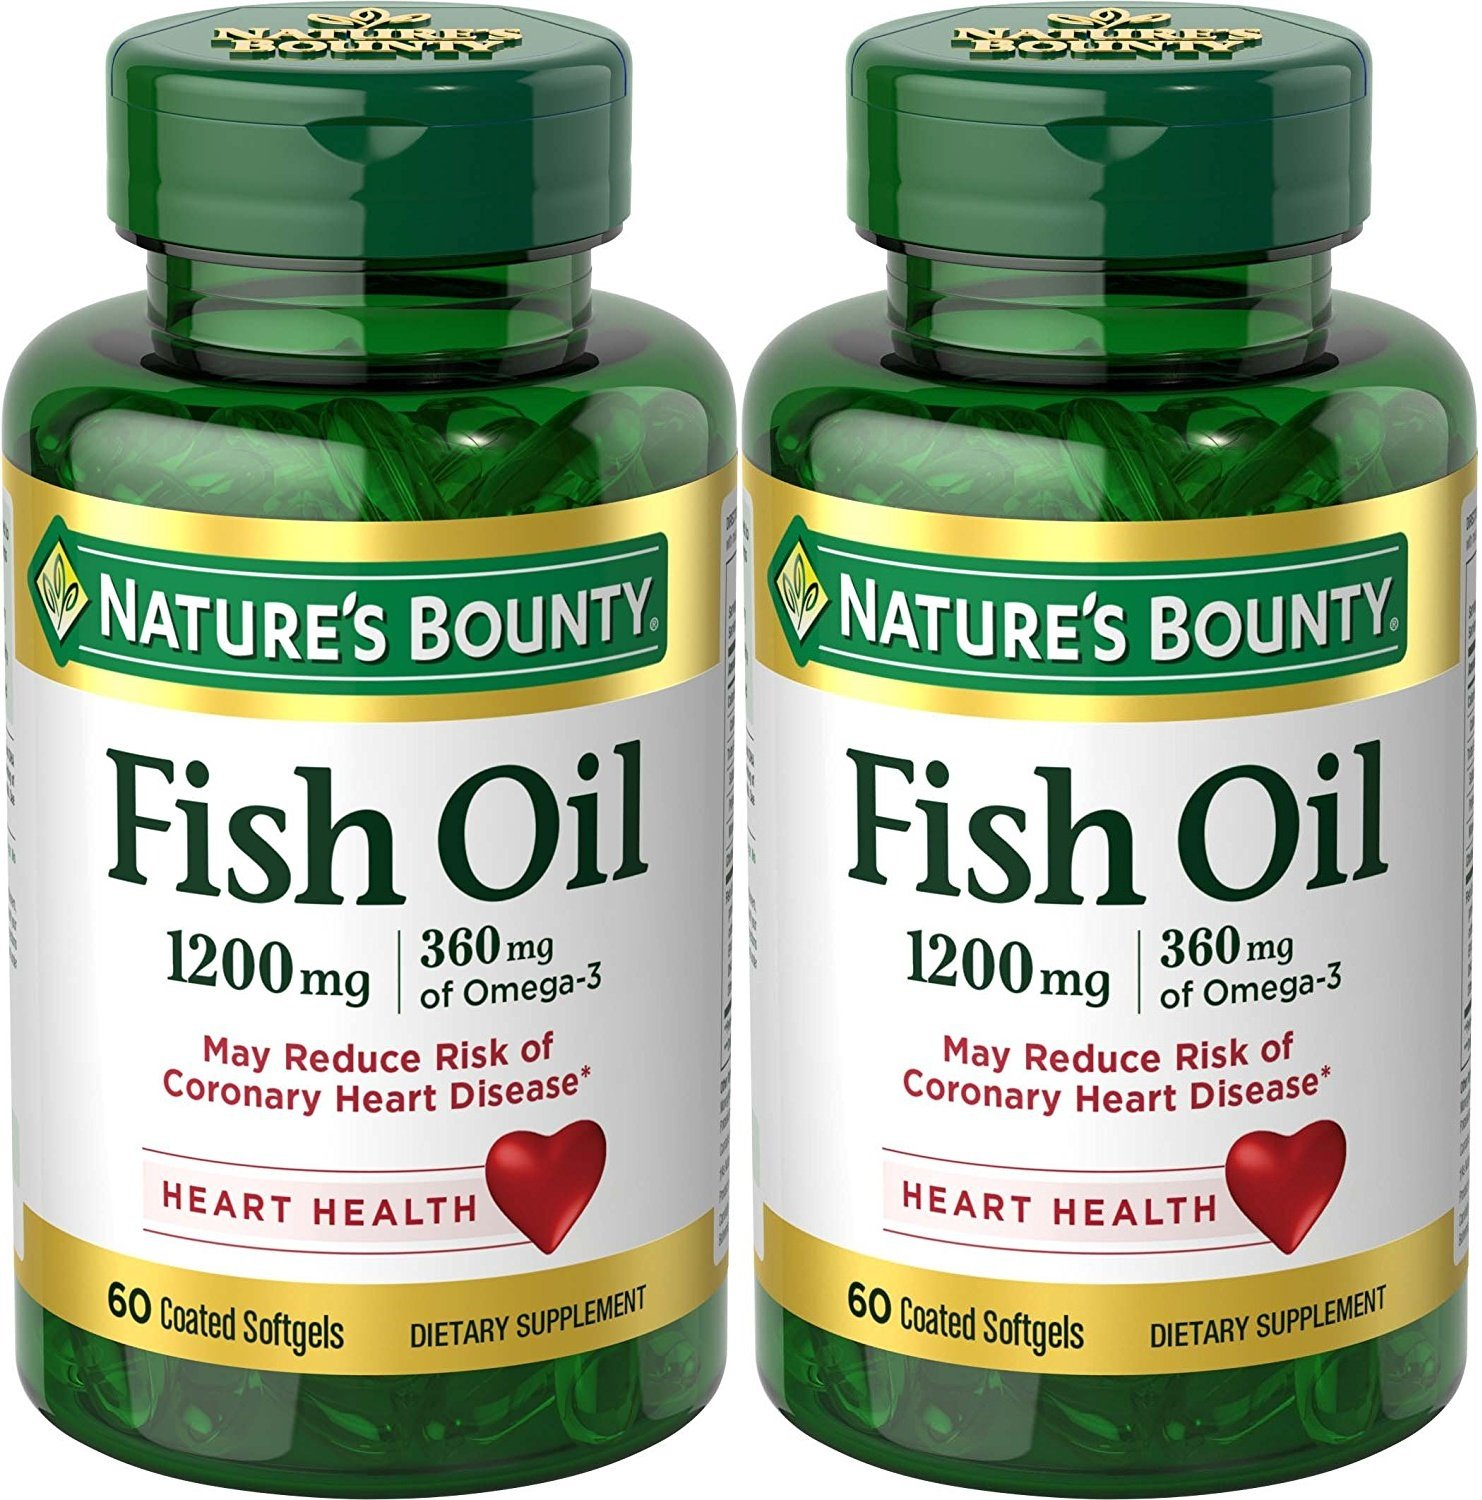 Nature's Bounty Odorless Fish Oil 1200mg, Omega 3, 120 Softgels (2 X 60 Count Bottles) by Nature's Bounty